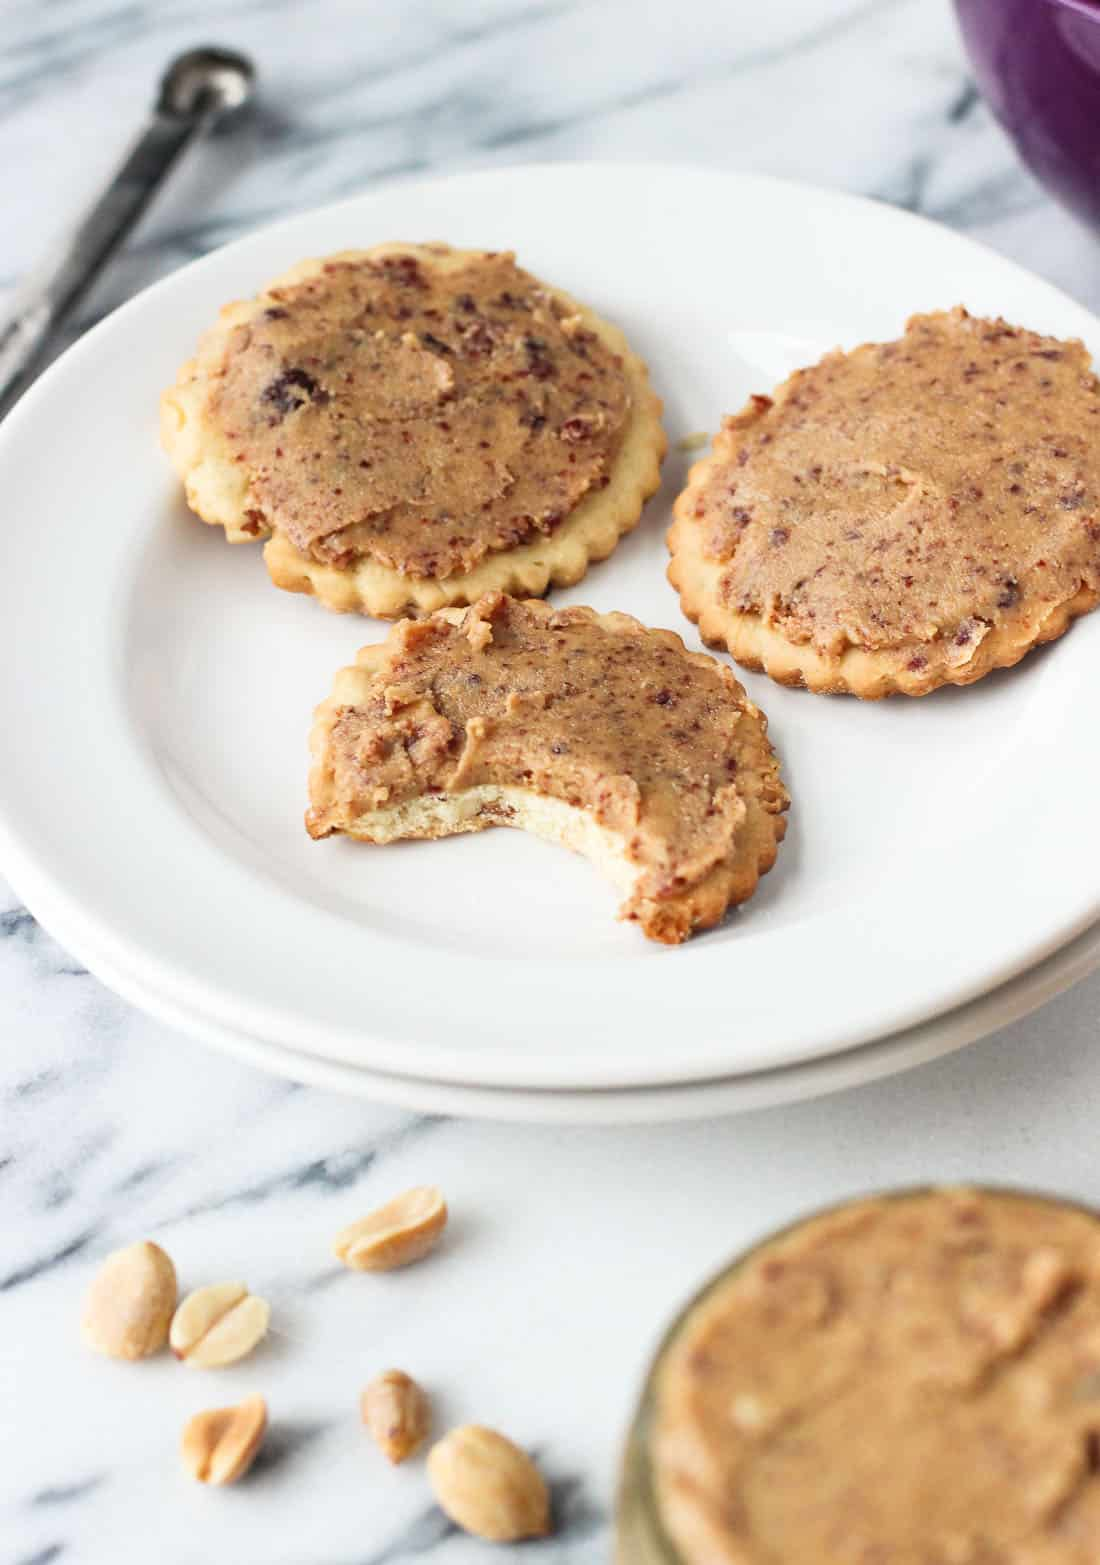 Homemade peanut butter spread on three crackers on a plate.